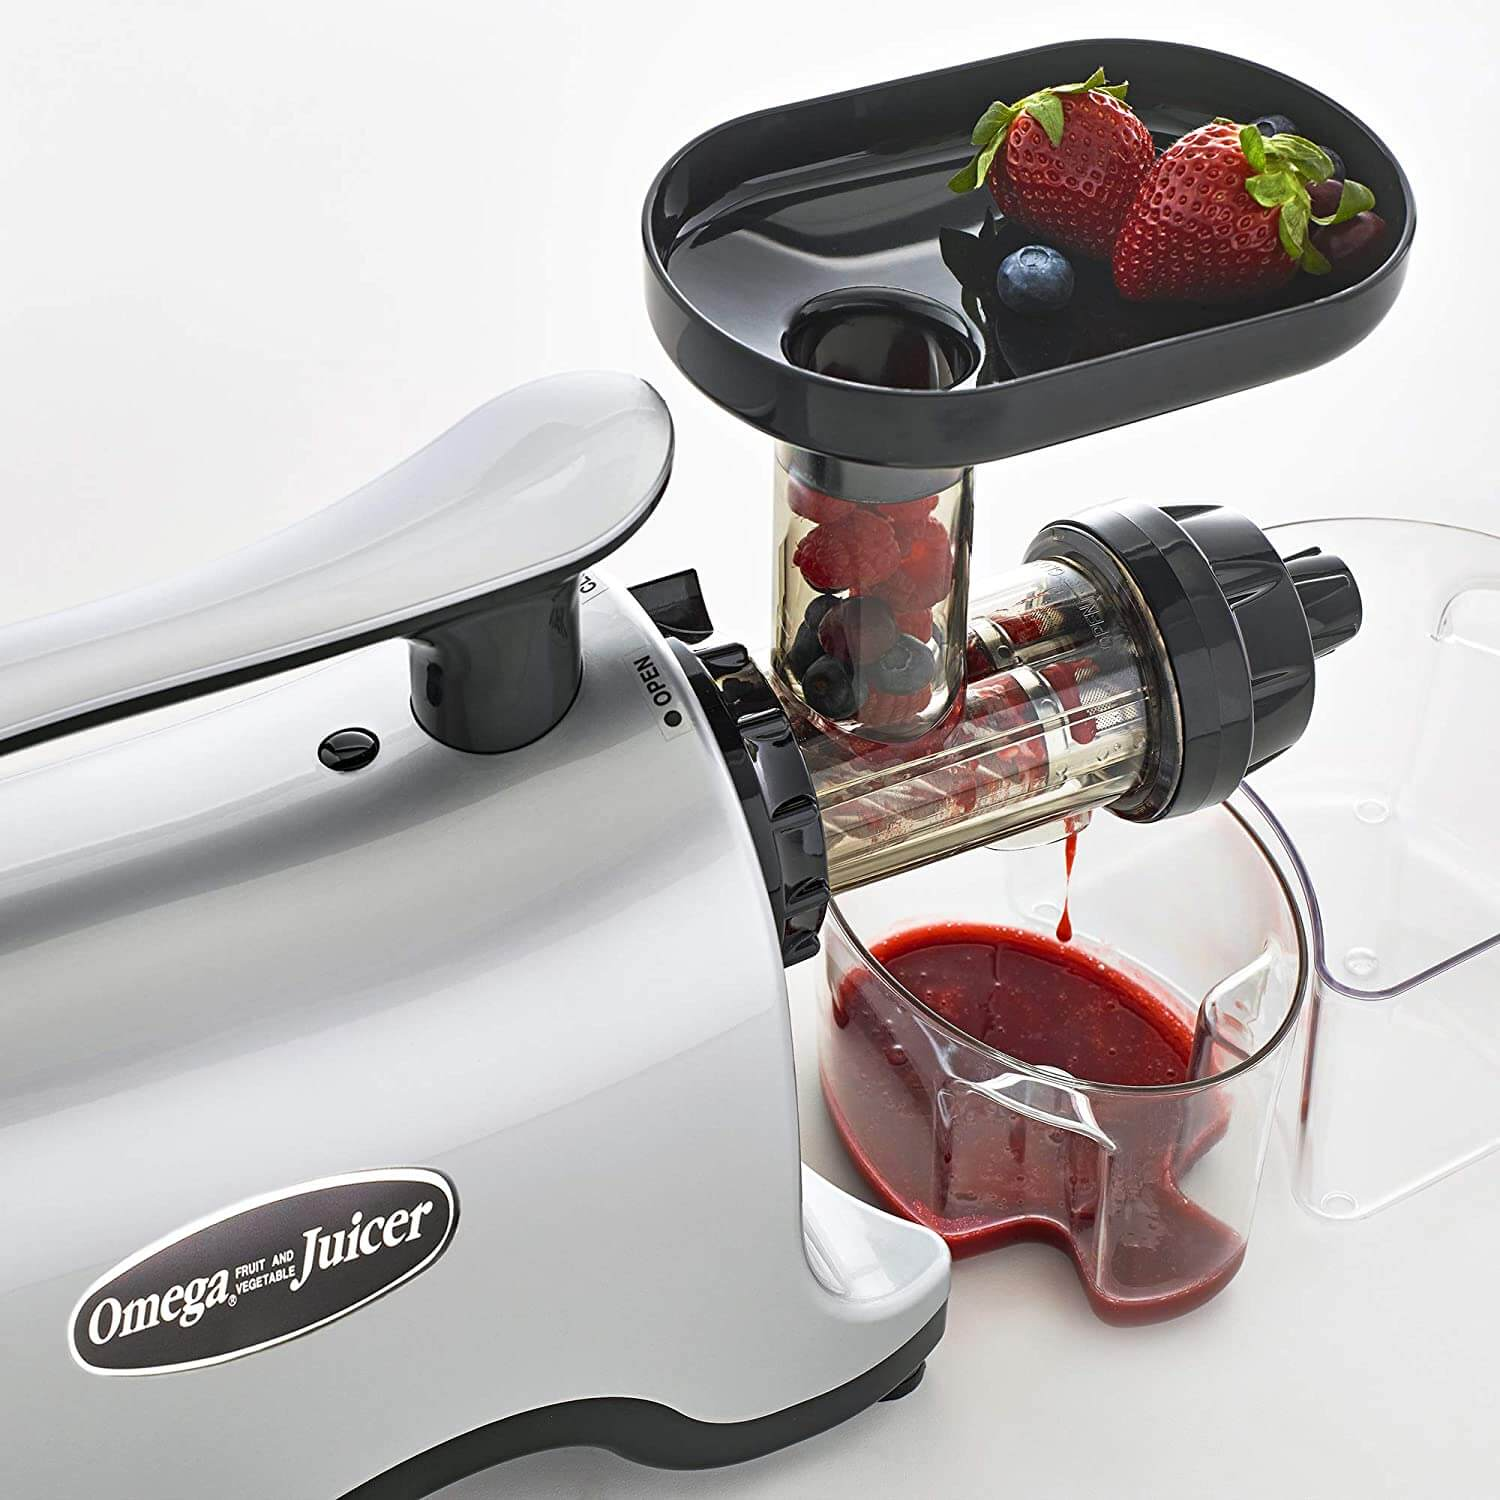 You Need to Know What is a Twin Gear Juicer